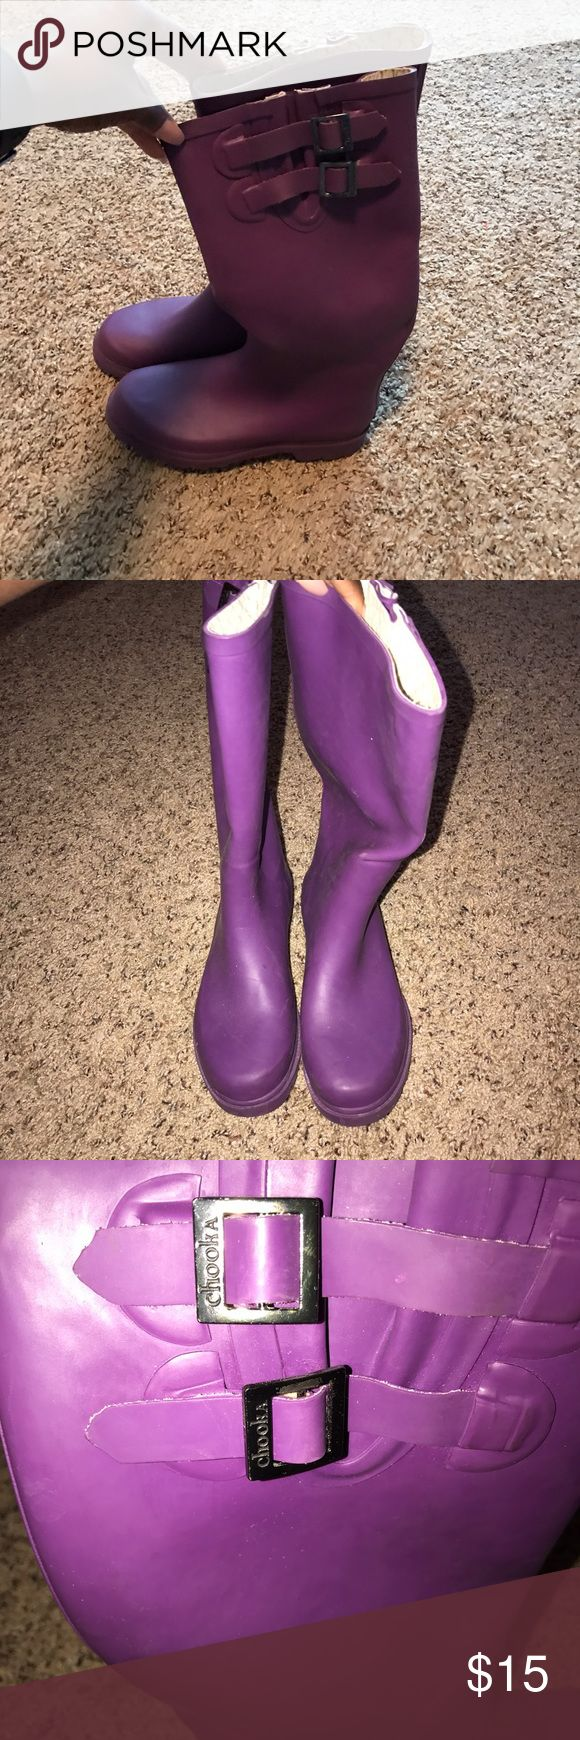 Cute rain boots Rain boots that just don't fit any more chooka Shoes Winter & Rain Boots